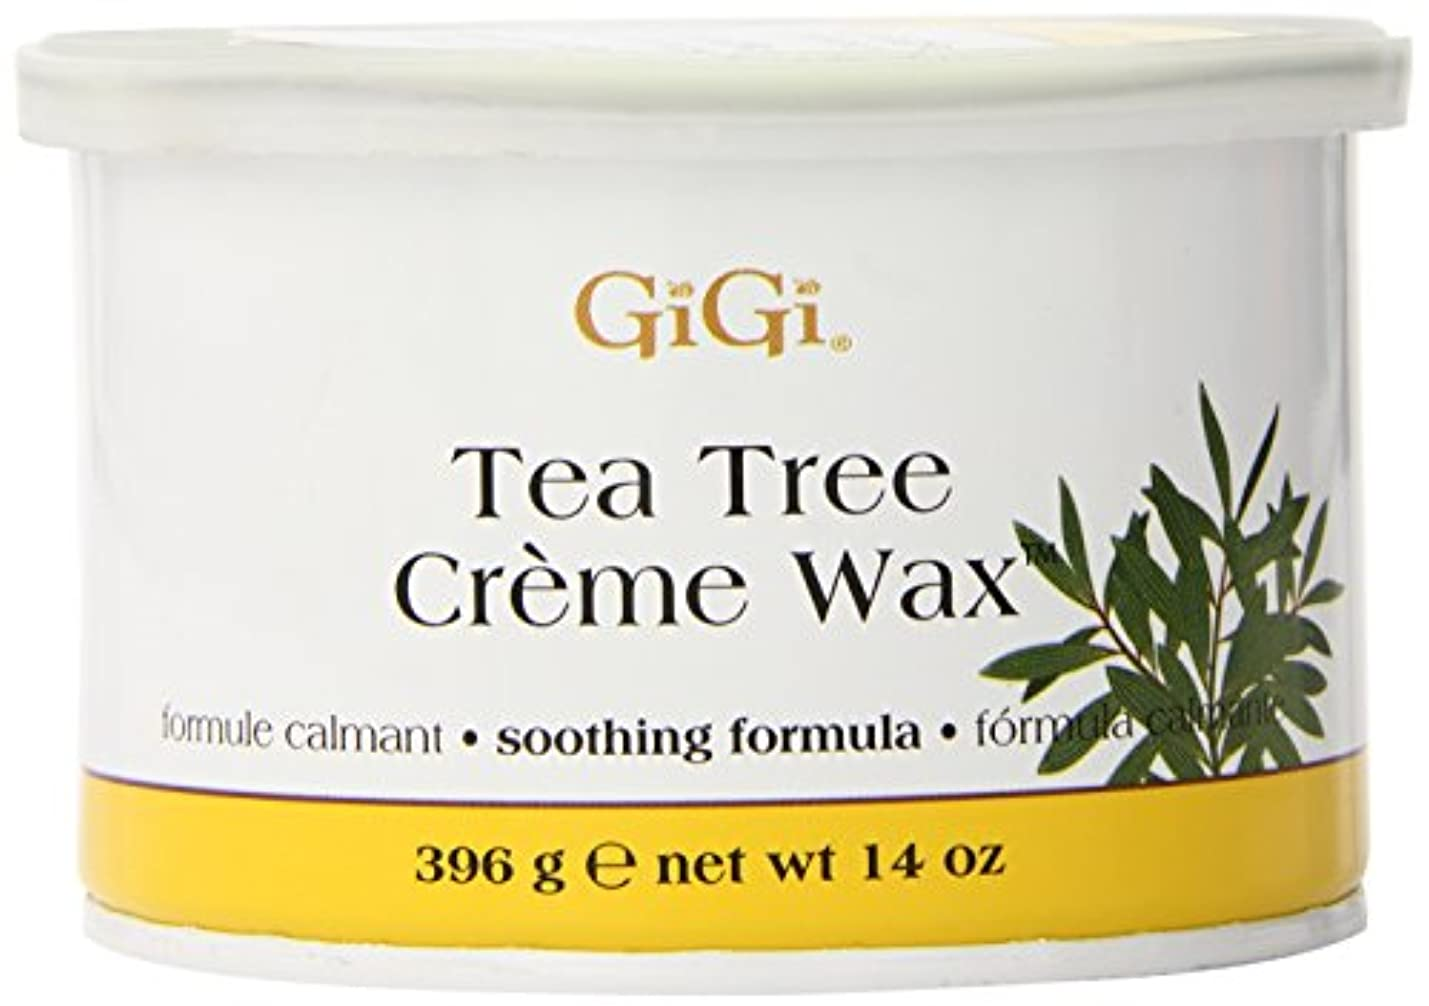 サイズ新しい意味ピアニストGiGi Tea Tree Cream Wax A Soothing Hair Removal Formula 396g